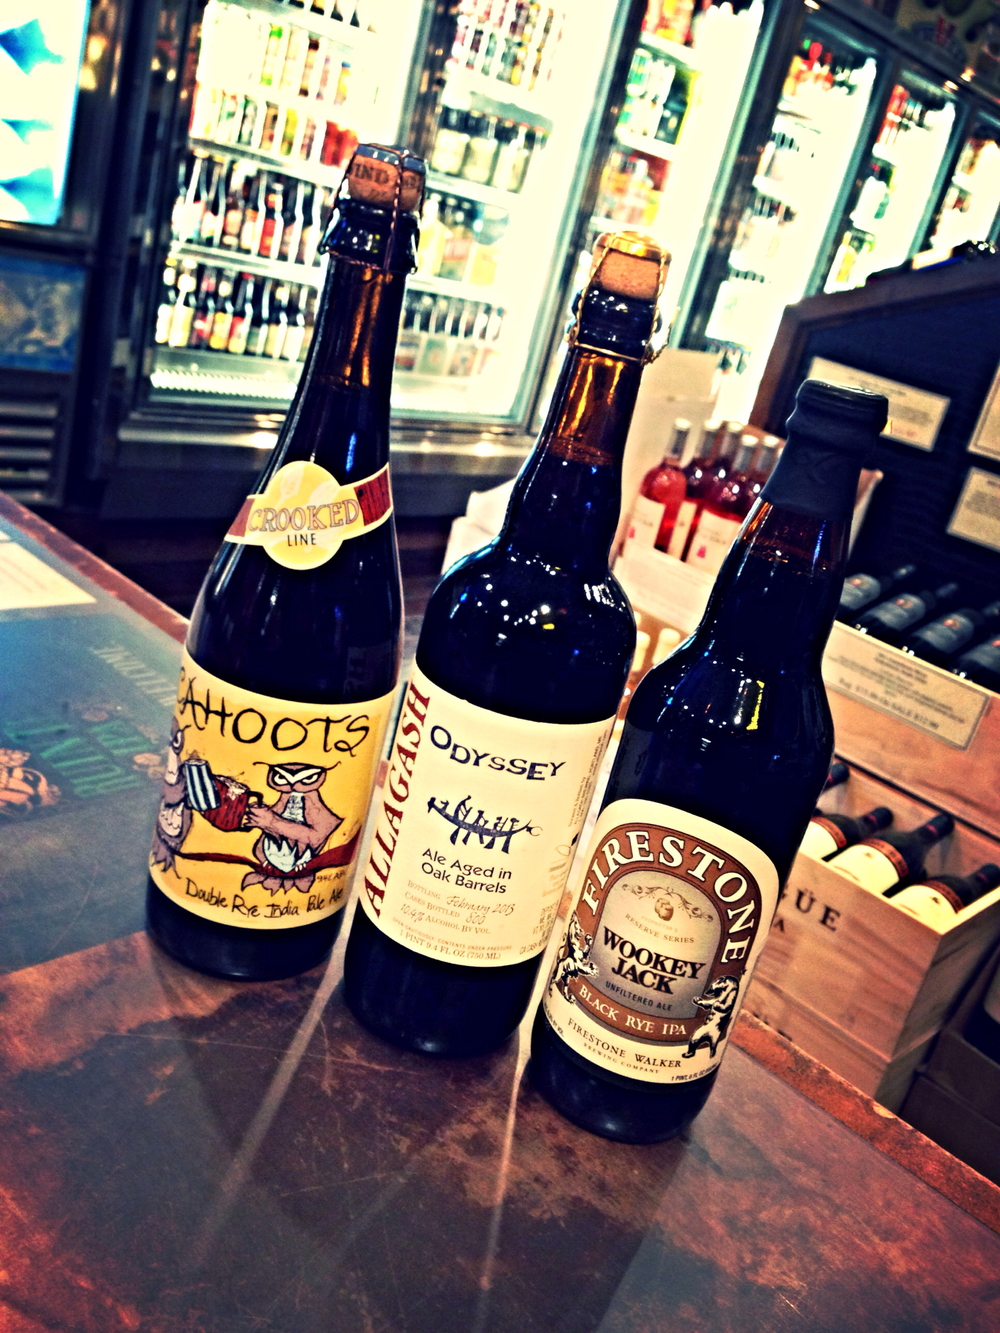 Uinta Cahoots Double Rye IPA, Allagash Oddysey 2013, and Firestone Walker Wookey Jack